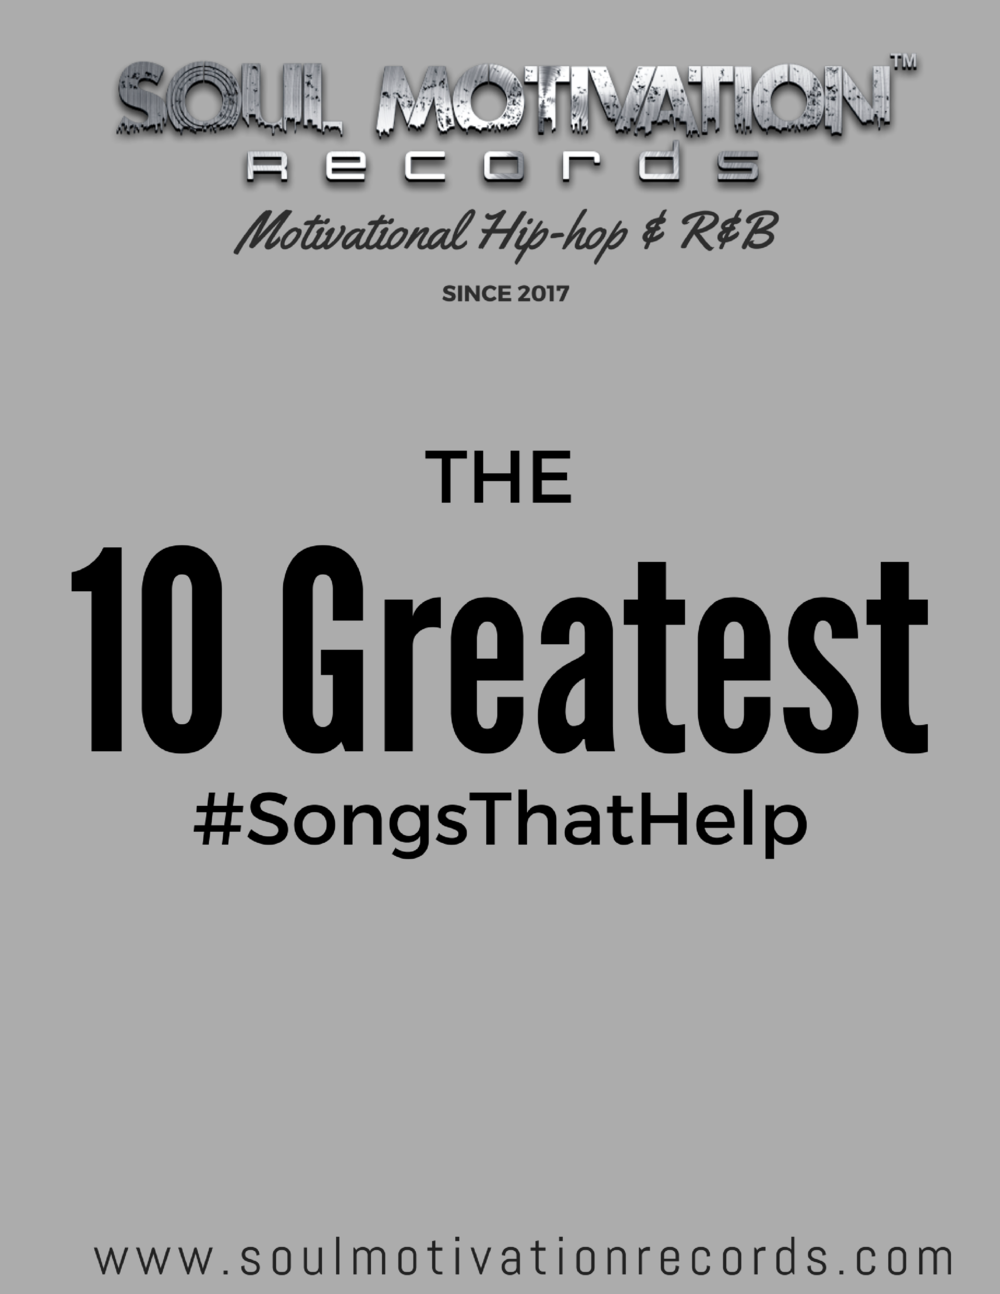 Get your copy TODAY! - Just enter your name and email address and hit SUBMIT and you will have instant access to this powerful list of songs!